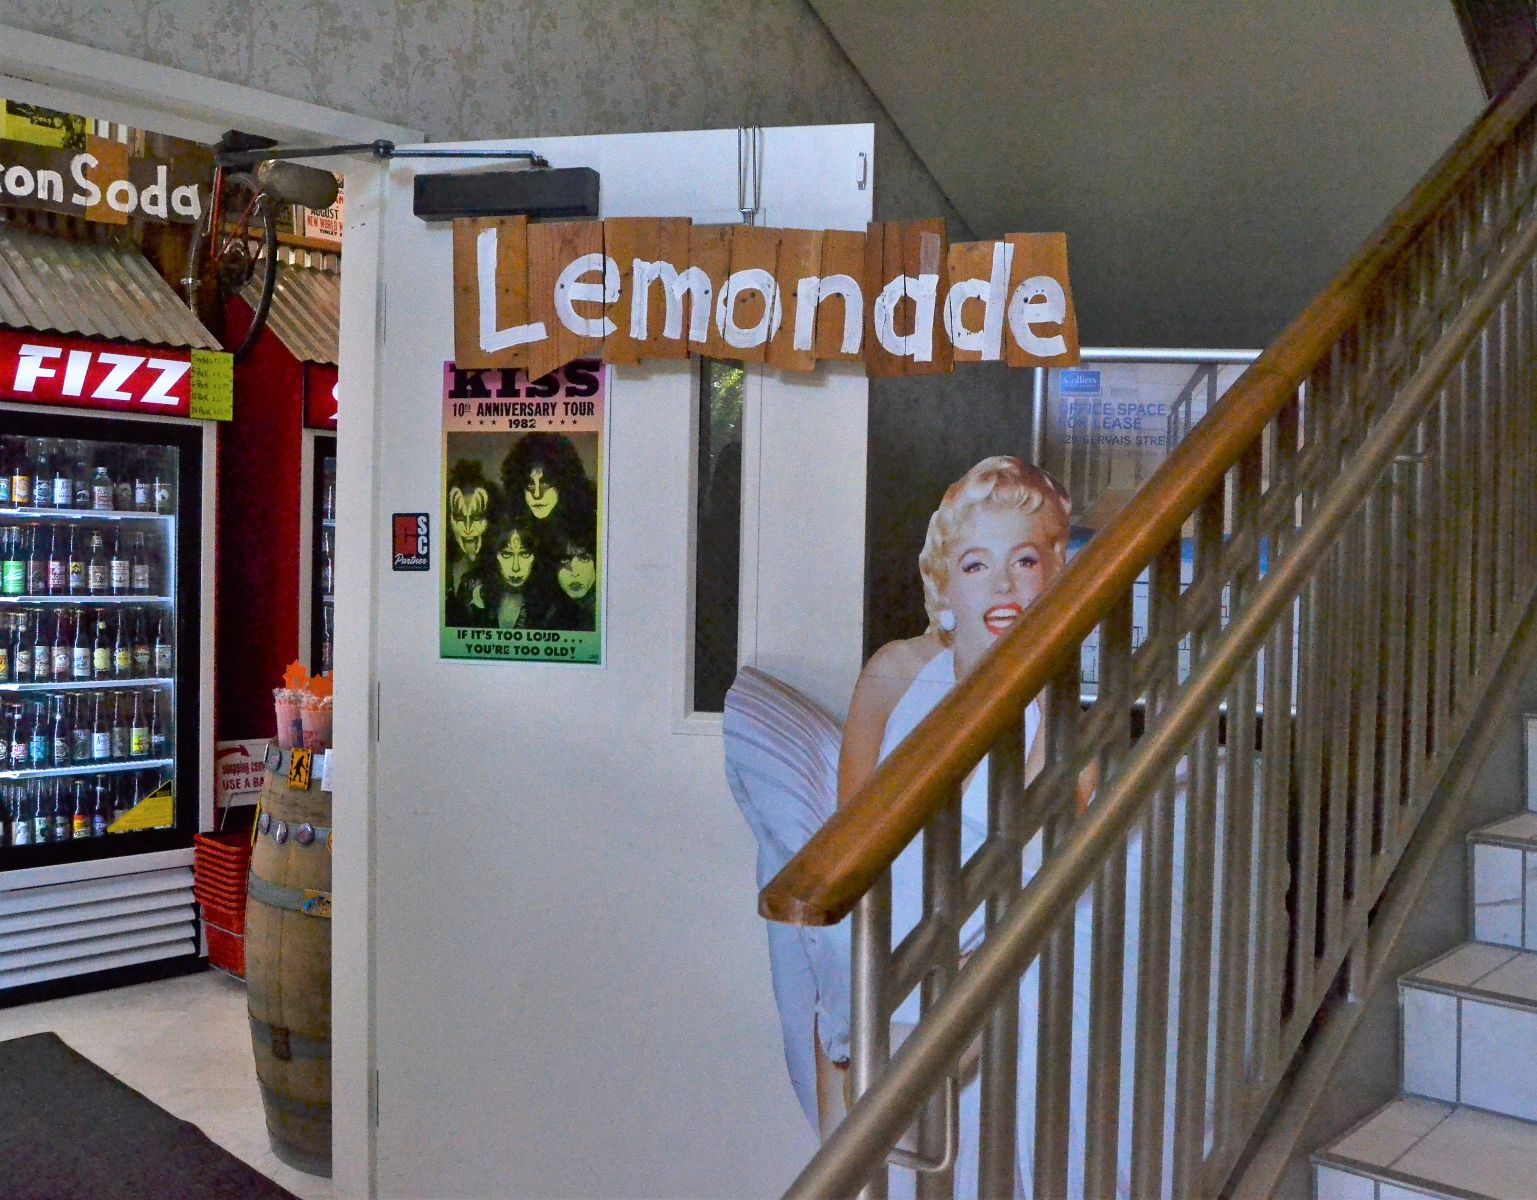 A cutout of Marilyn Monroe greets visitors to candy and soda shop Rocket Fizz. (Photo/Melinda Waldrop)